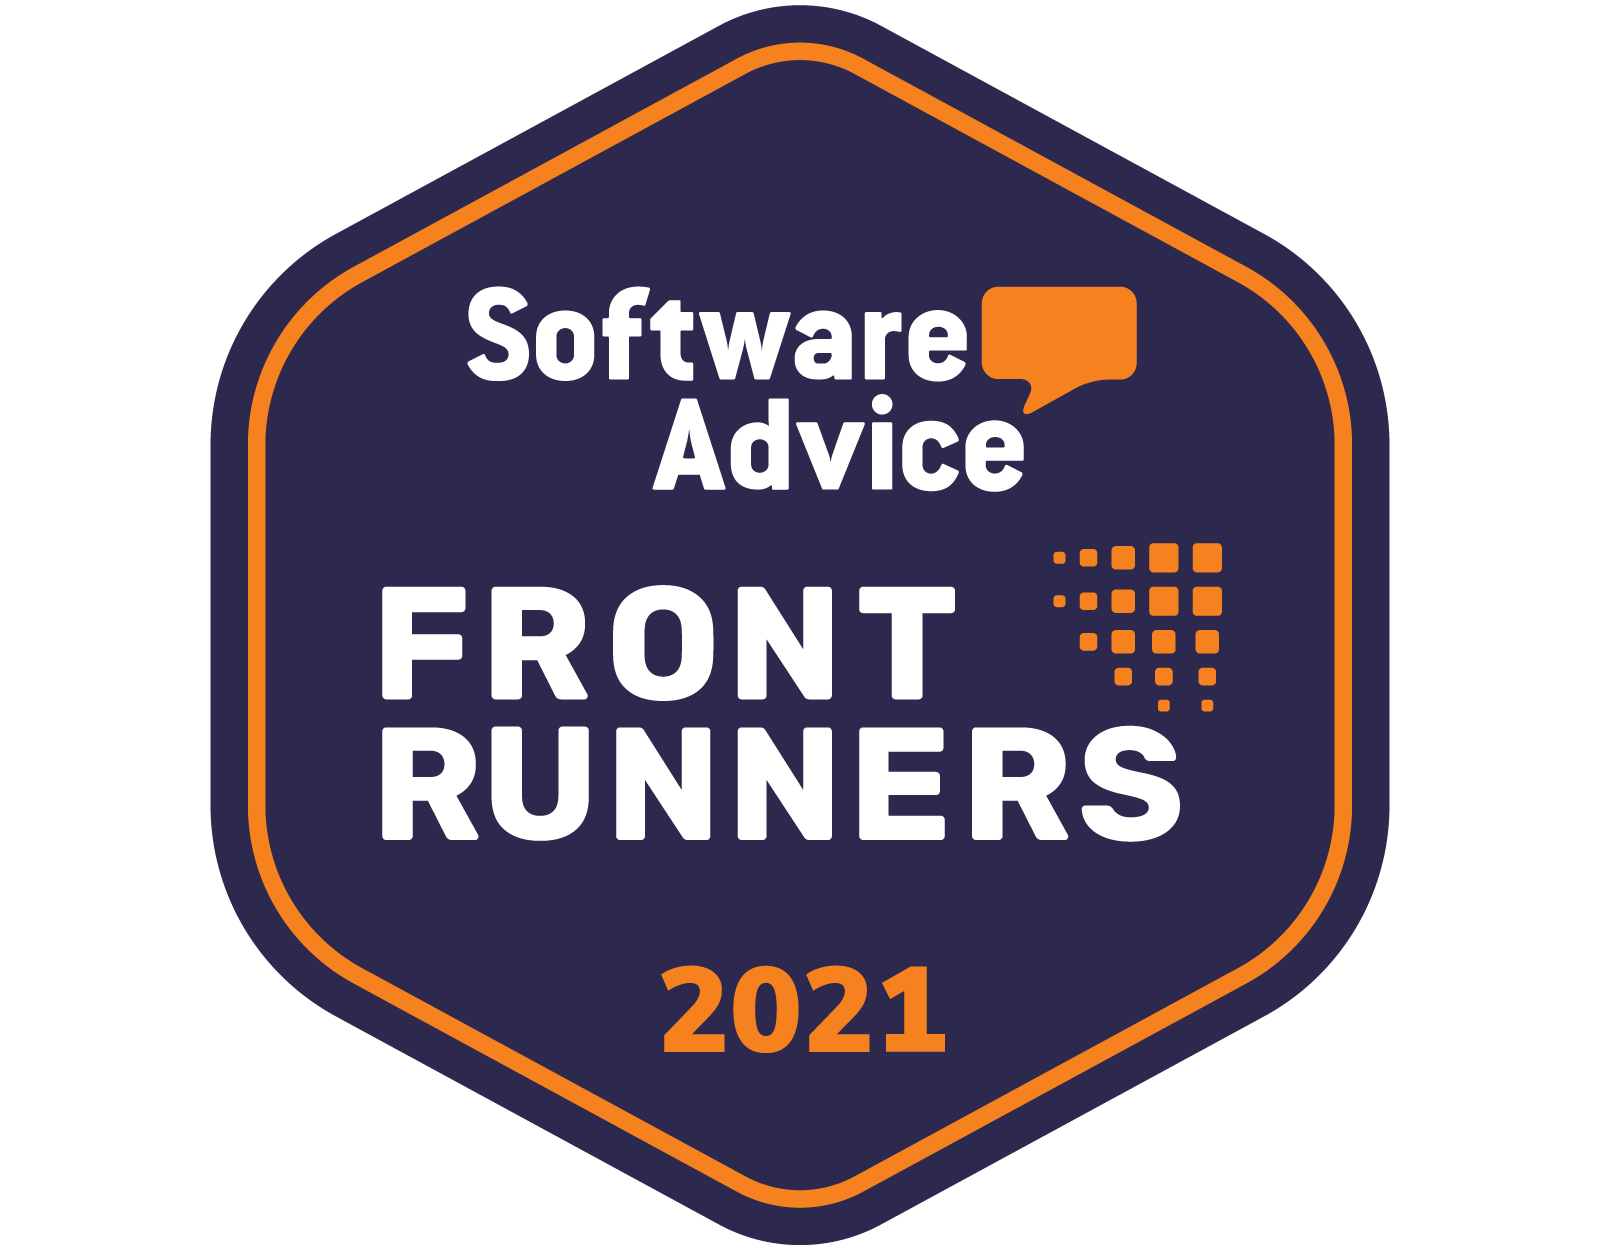 Software Advice front runners award